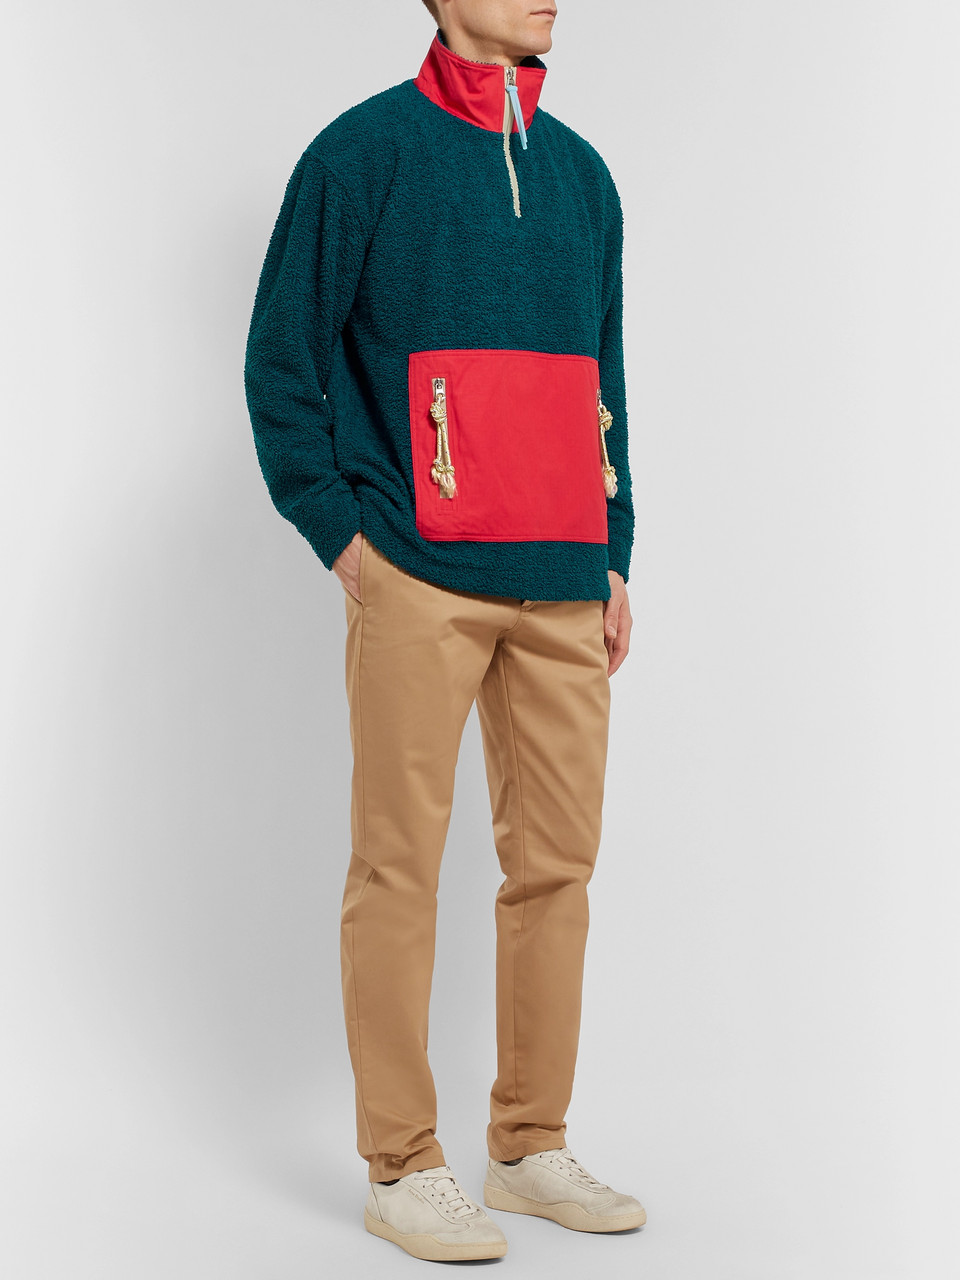 Acne Studios Faraz Cotton-Panelled Fleece Half-Zip Jacket